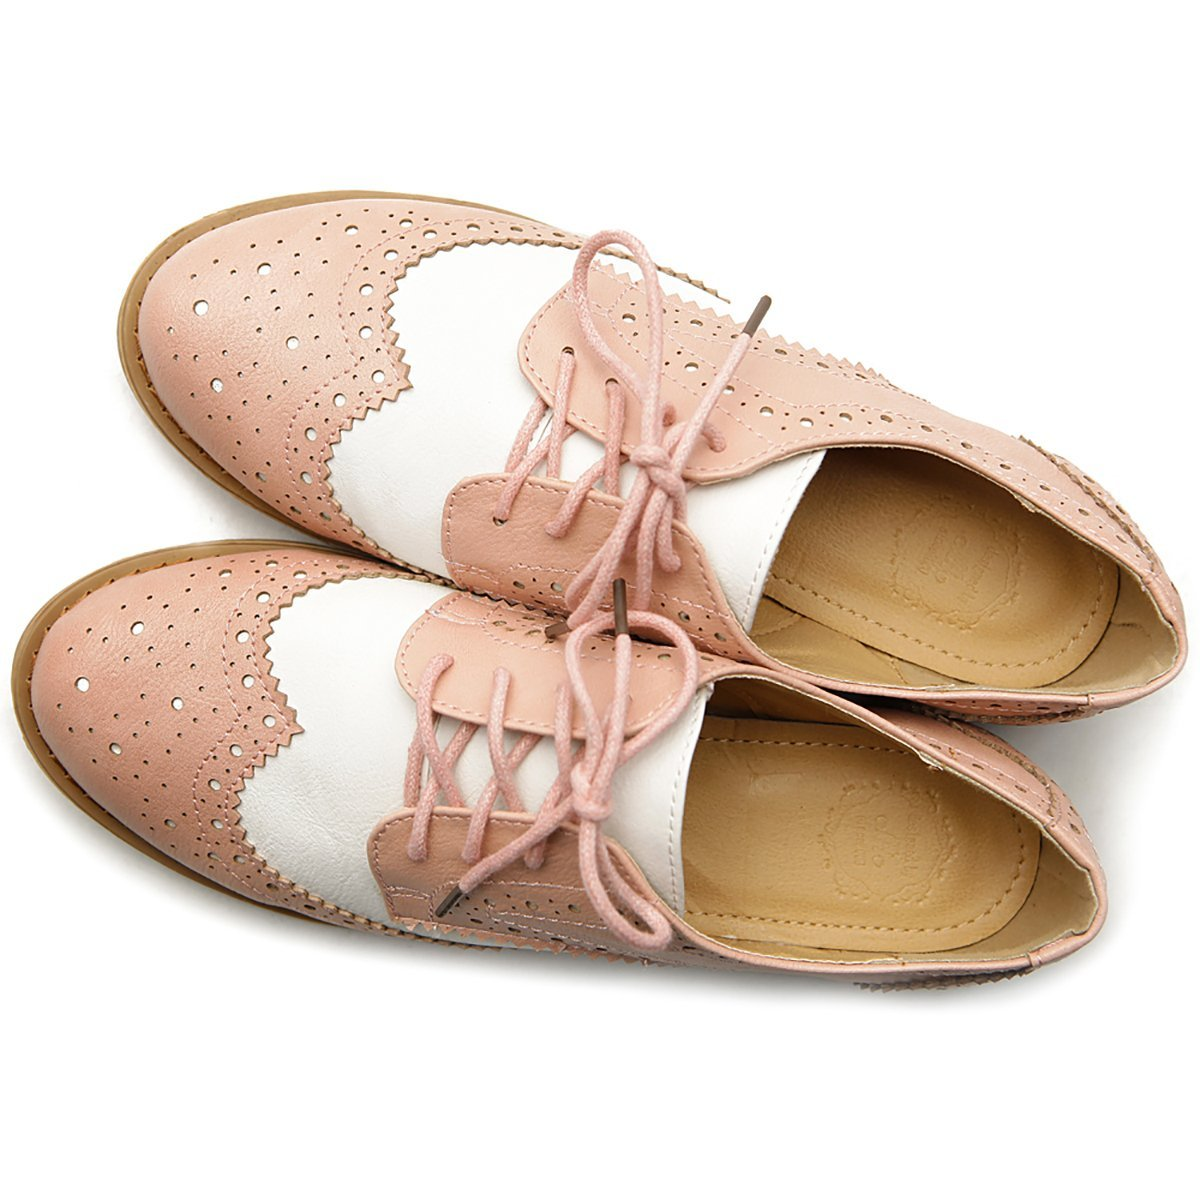 Saddle Shoes History Ollio Womens Flat Shoe Wingtip Lace up Two Tone Oxford $27.99 AT vintagedancer.com